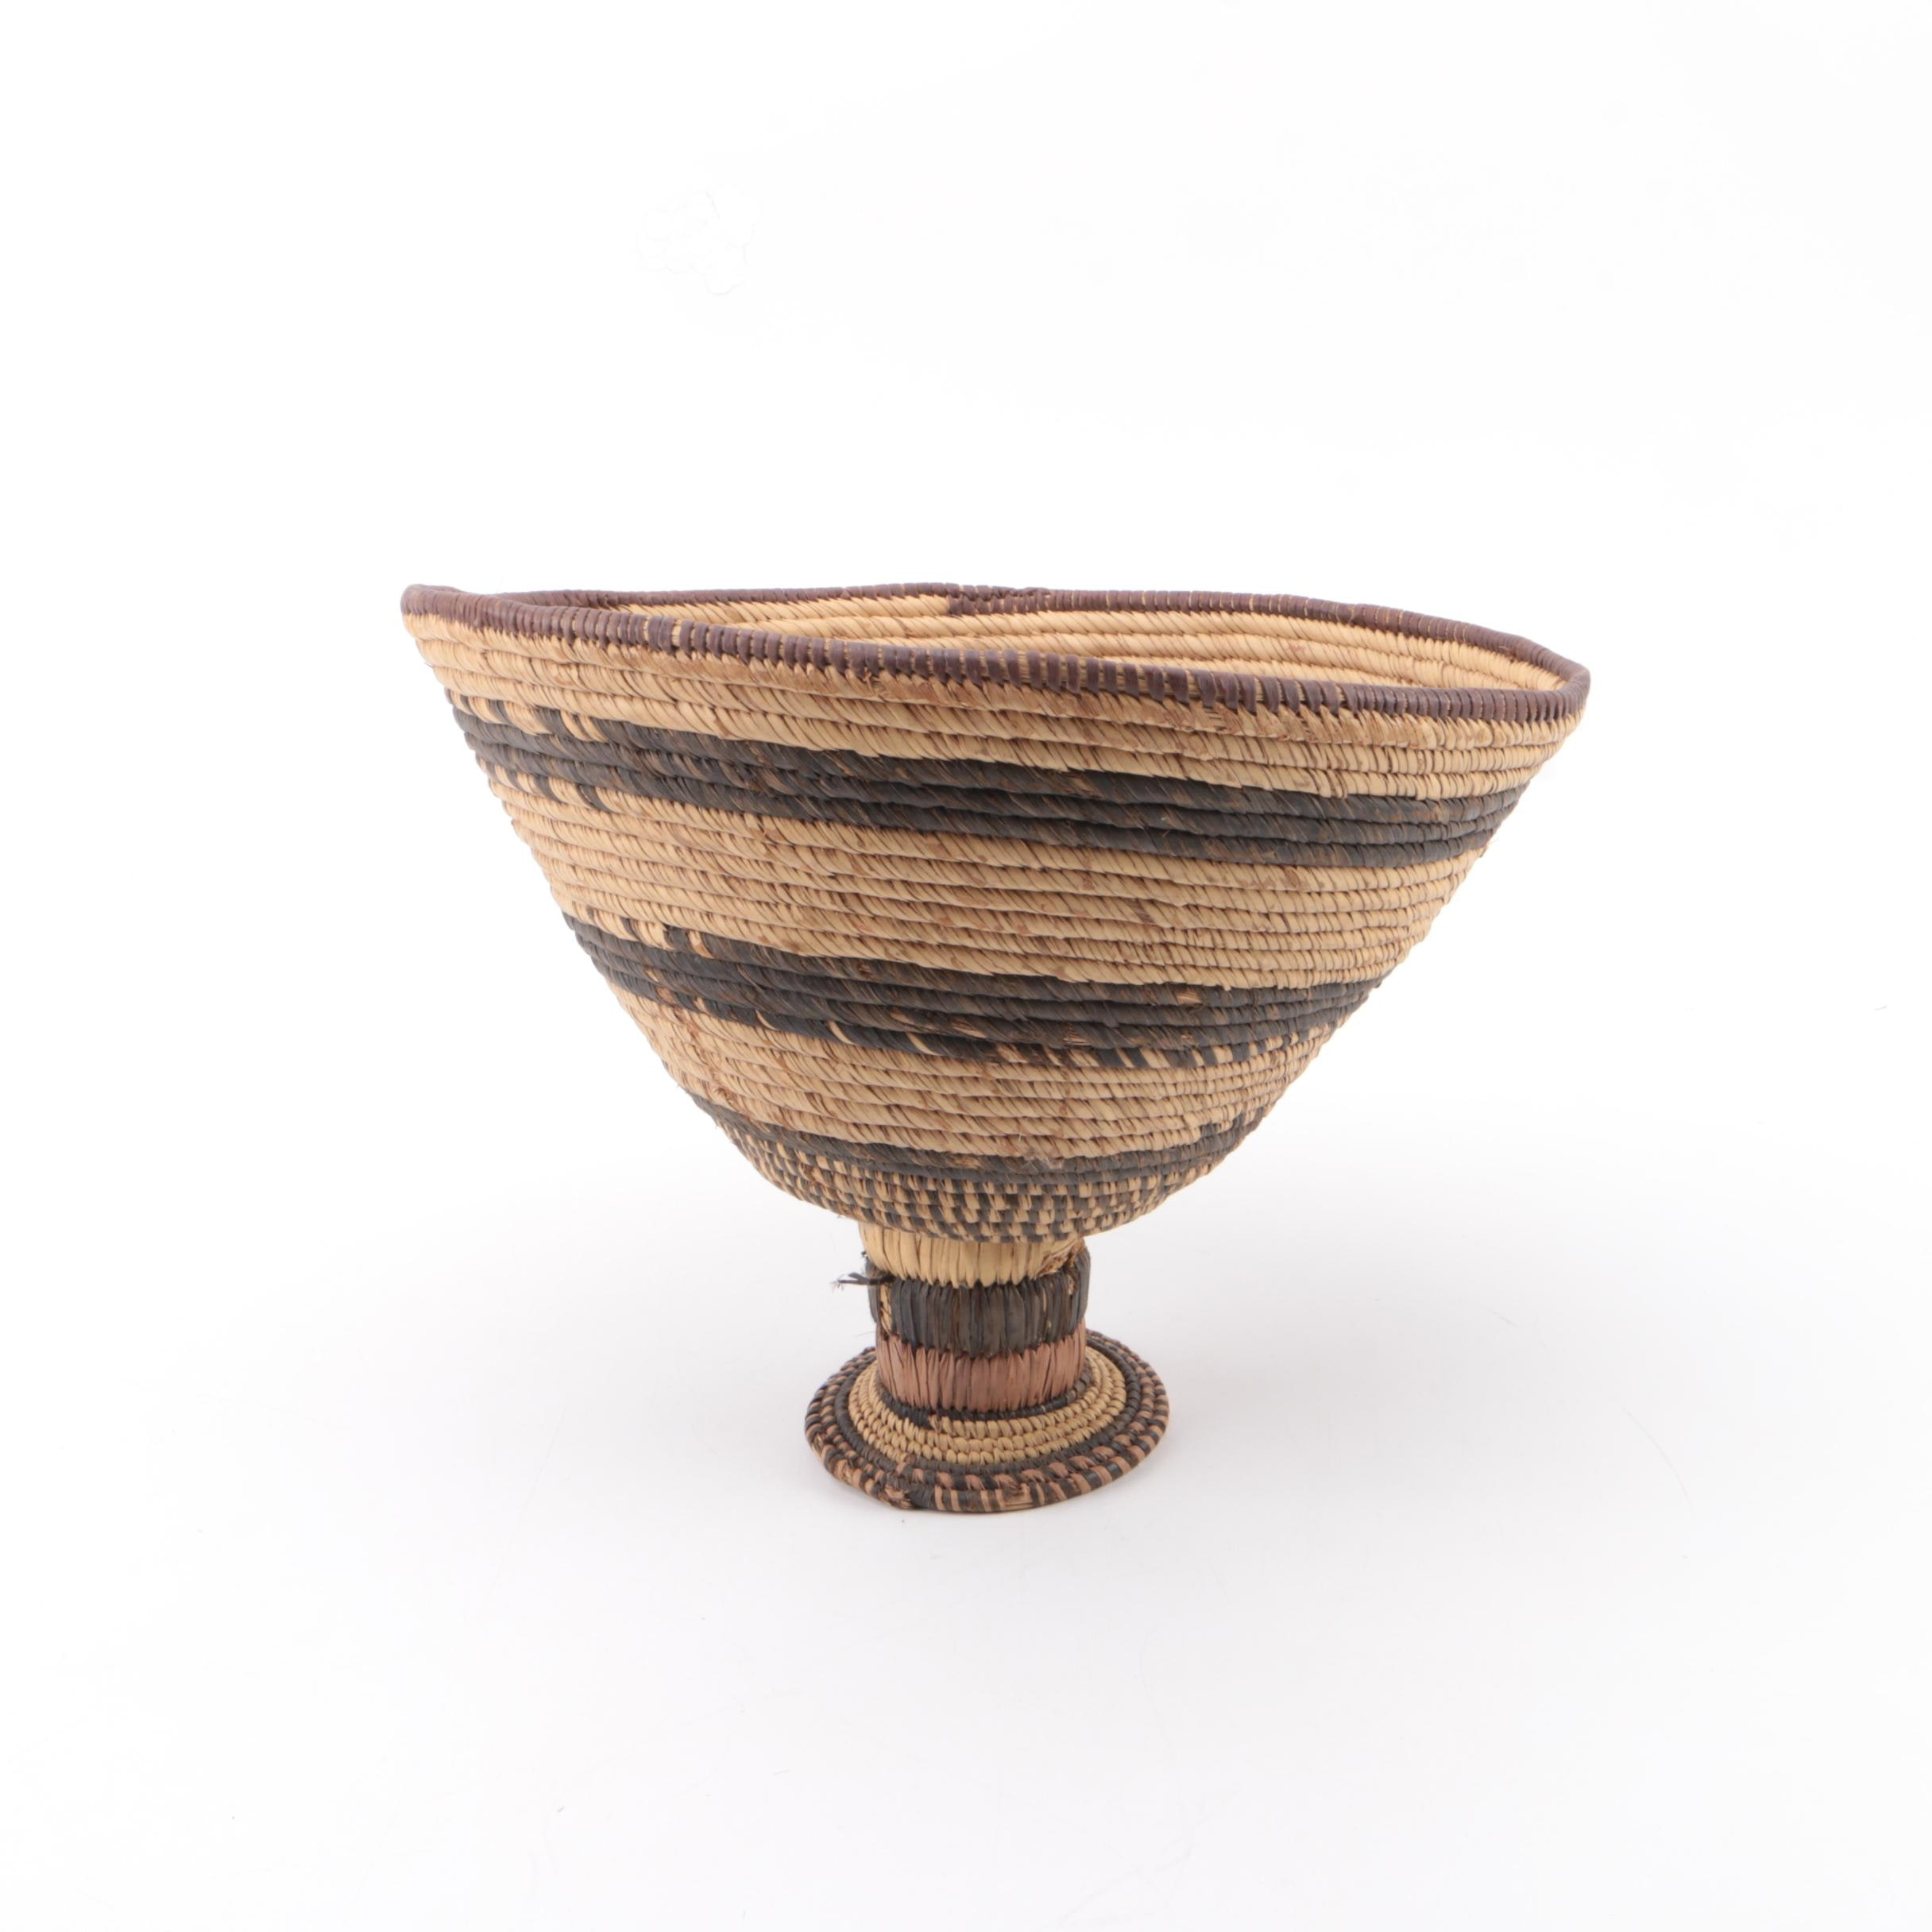 Decorative Woven Footed Bowl